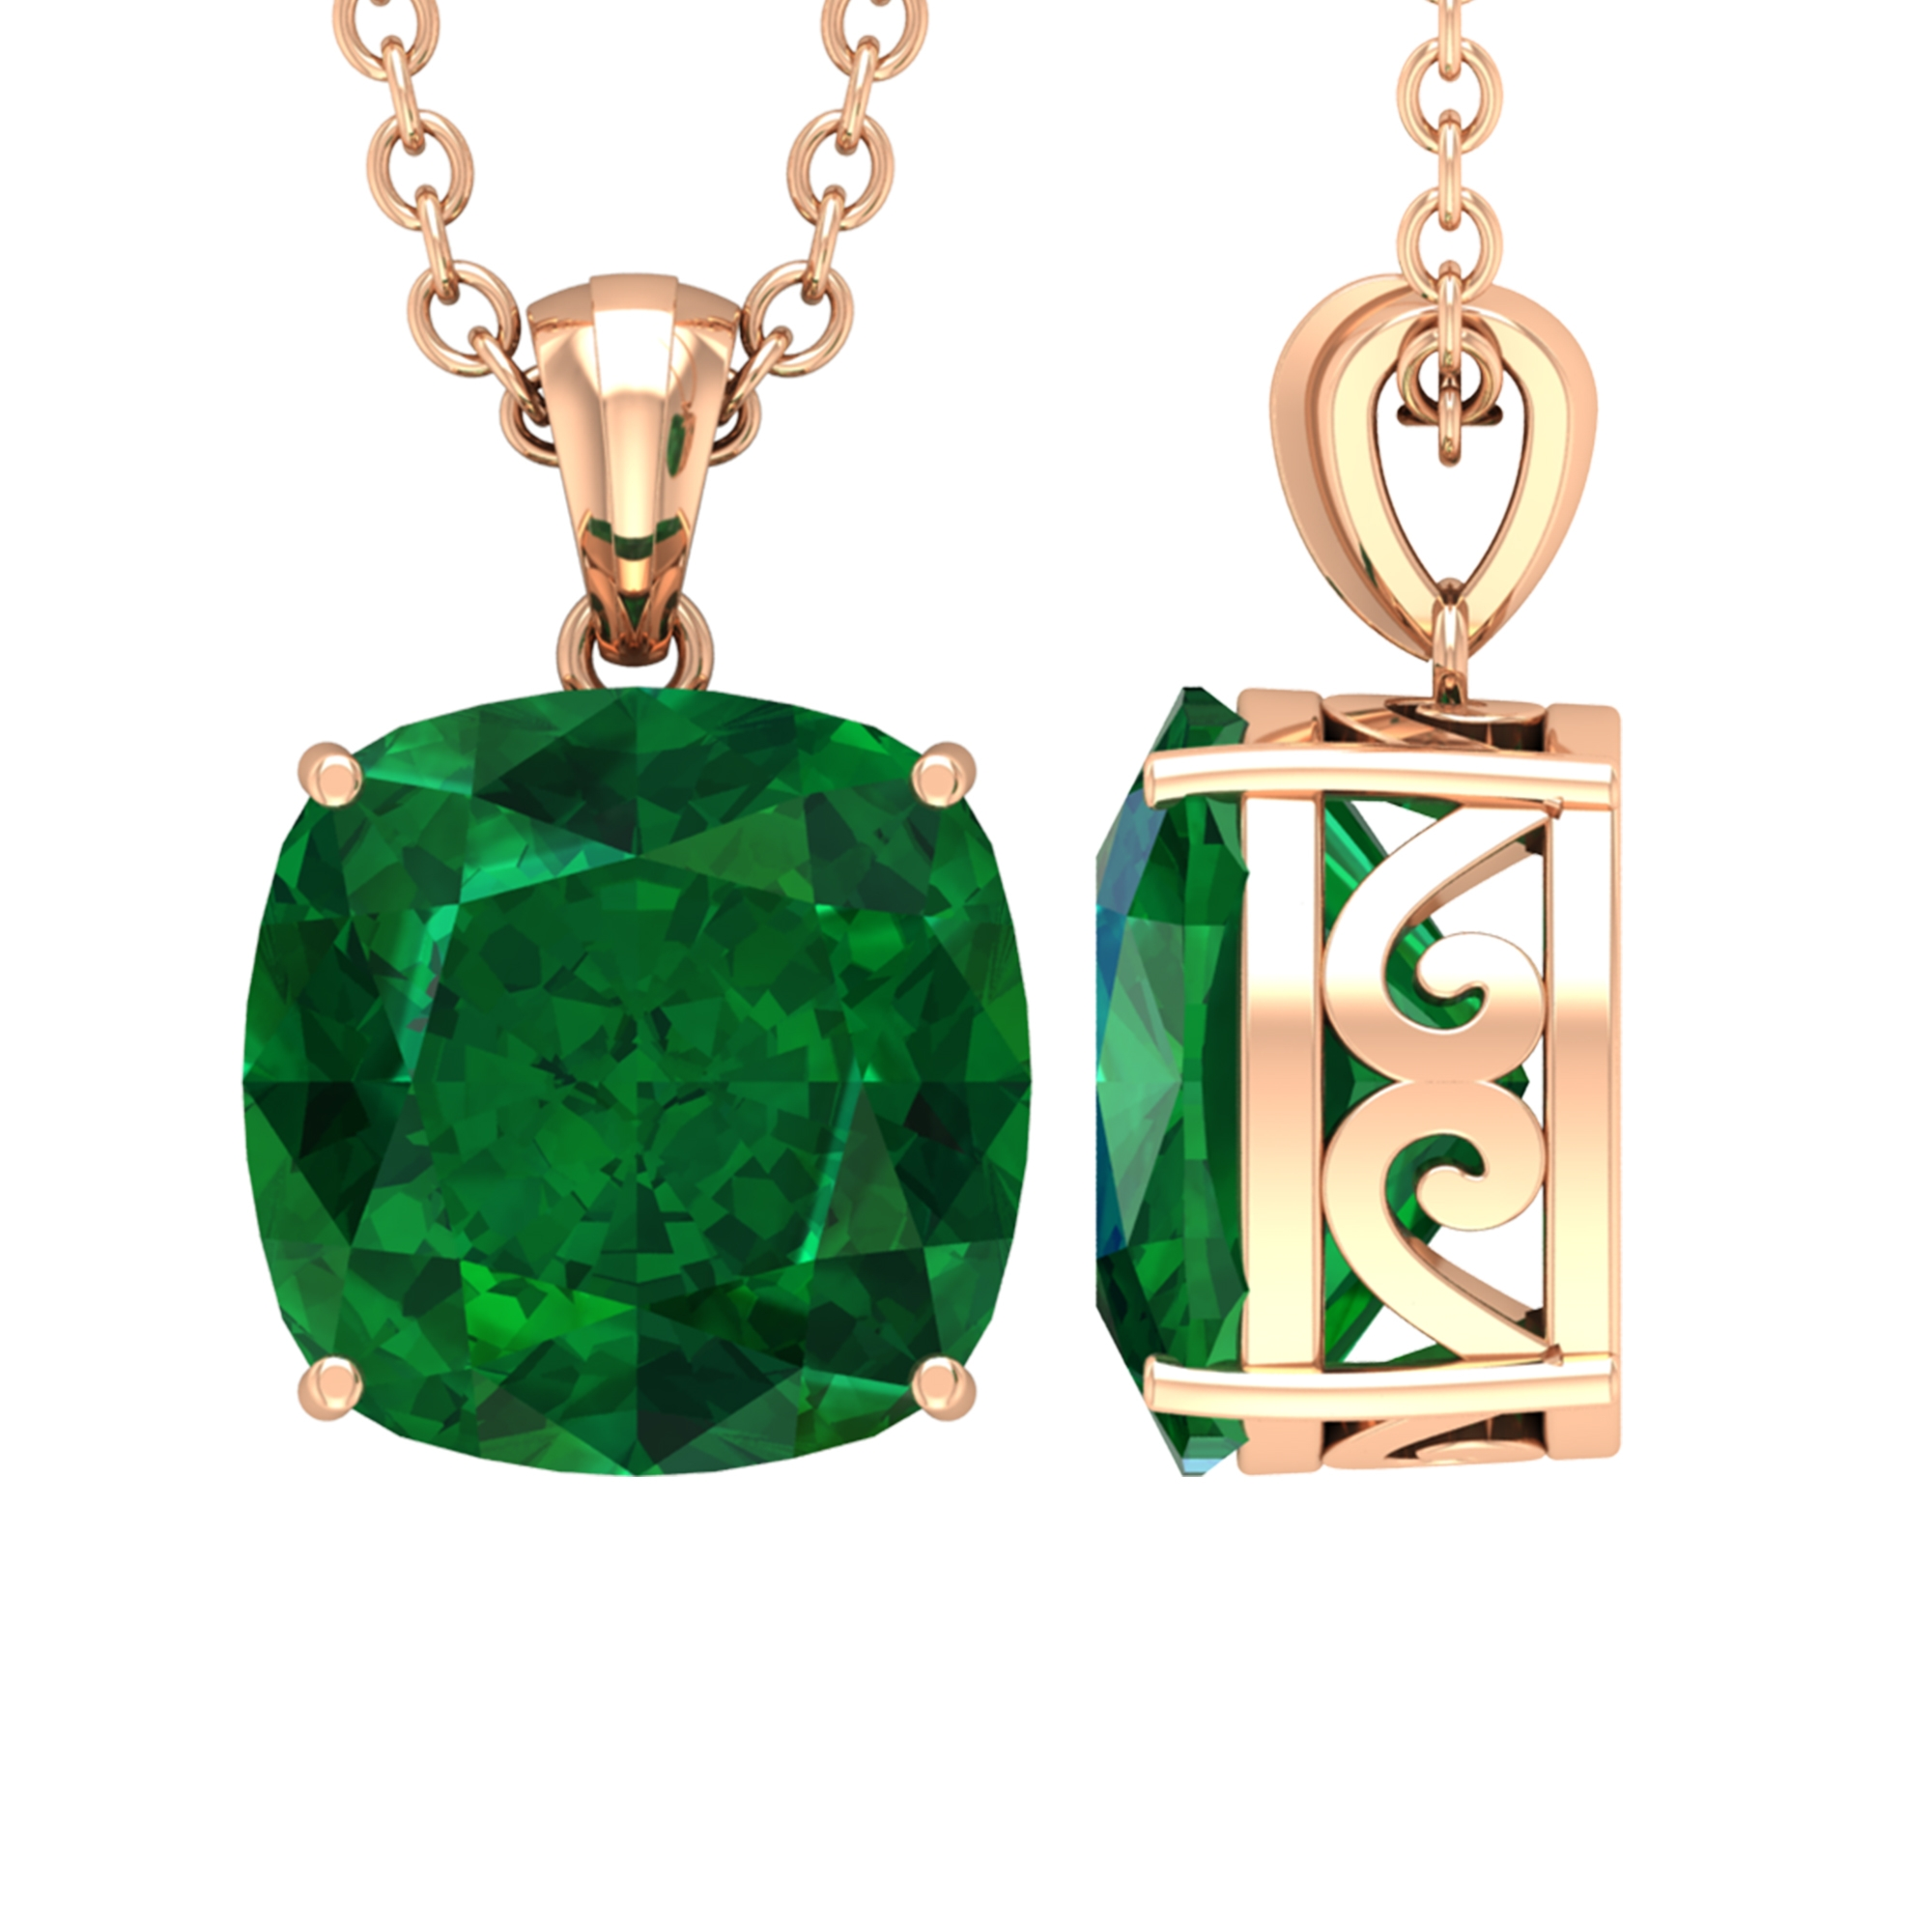 8 MM Cushion Cut Emerald Solitaire Pendant in 4 Prong Setting for Women